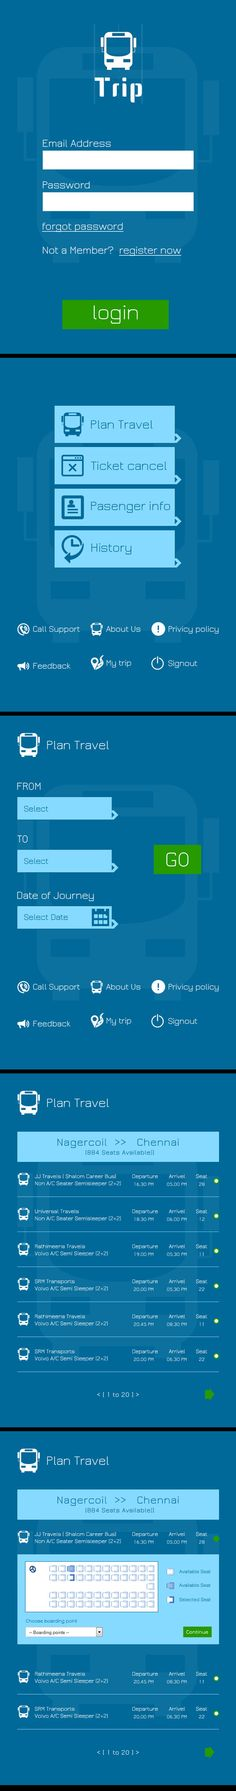 MOBILE / TABLET APP - BUS TICKET BOOKING on Behance